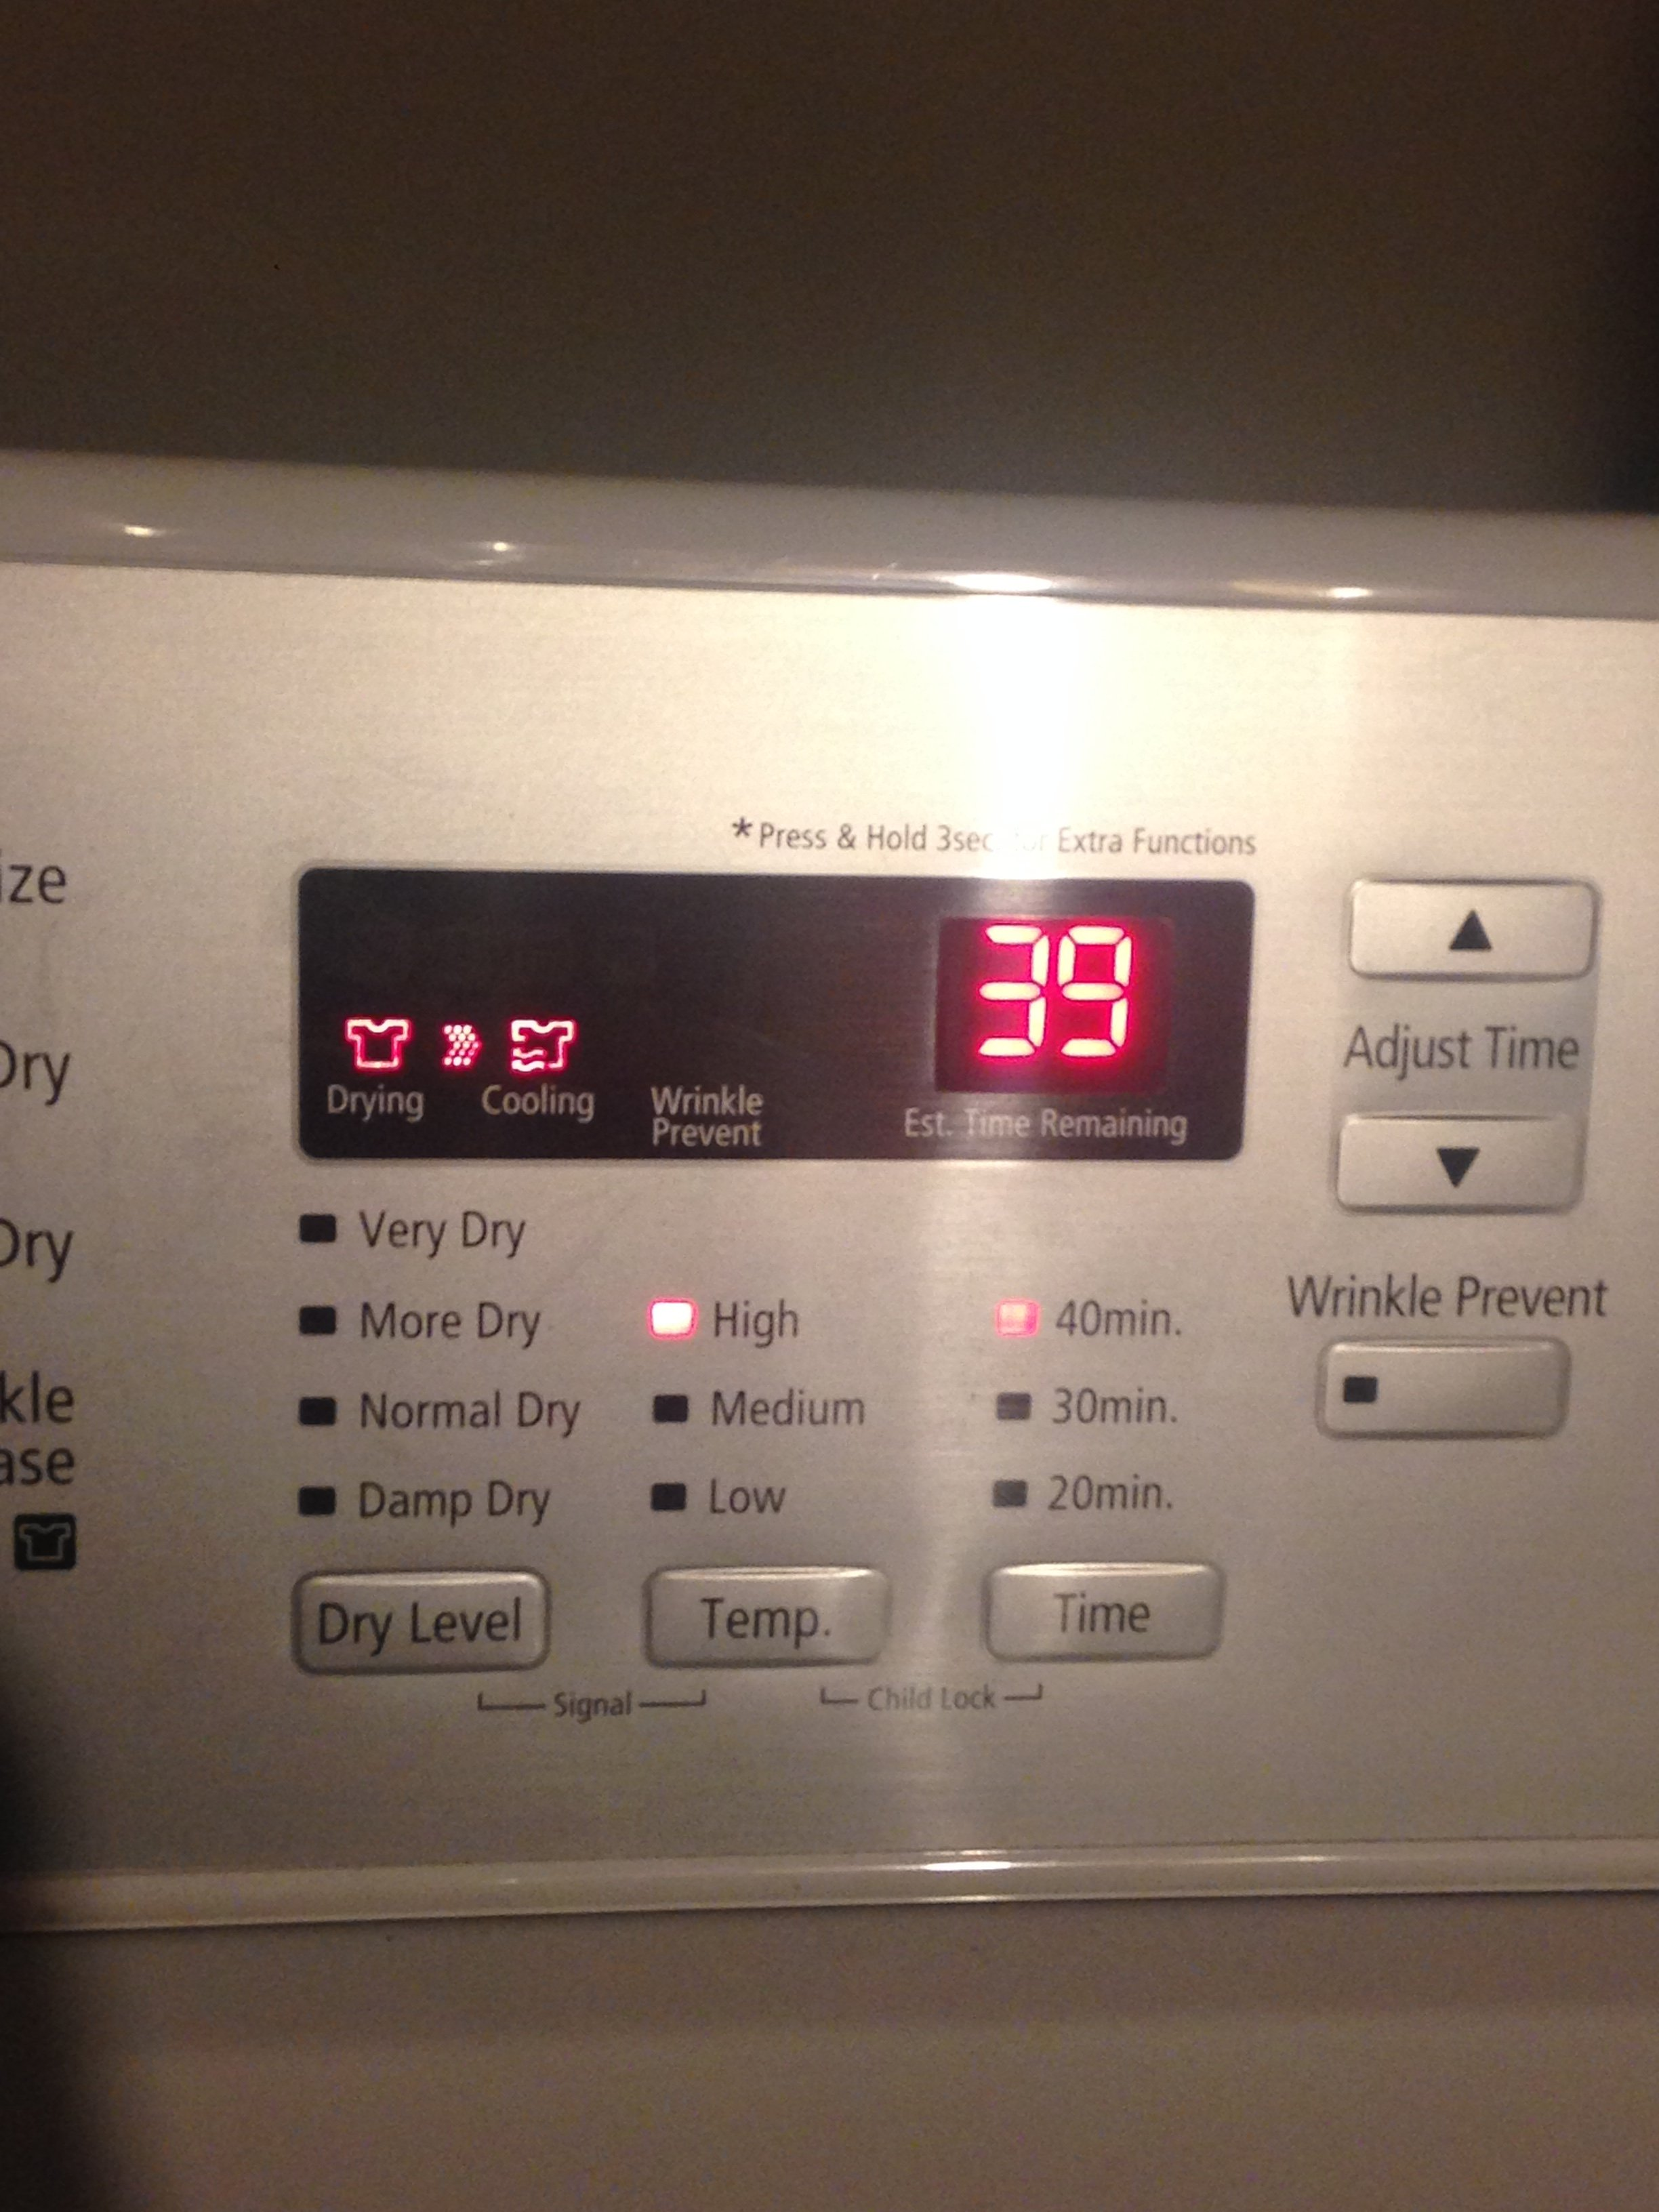 Samsung dv422 electric dryer no heat stuck in cooling mode